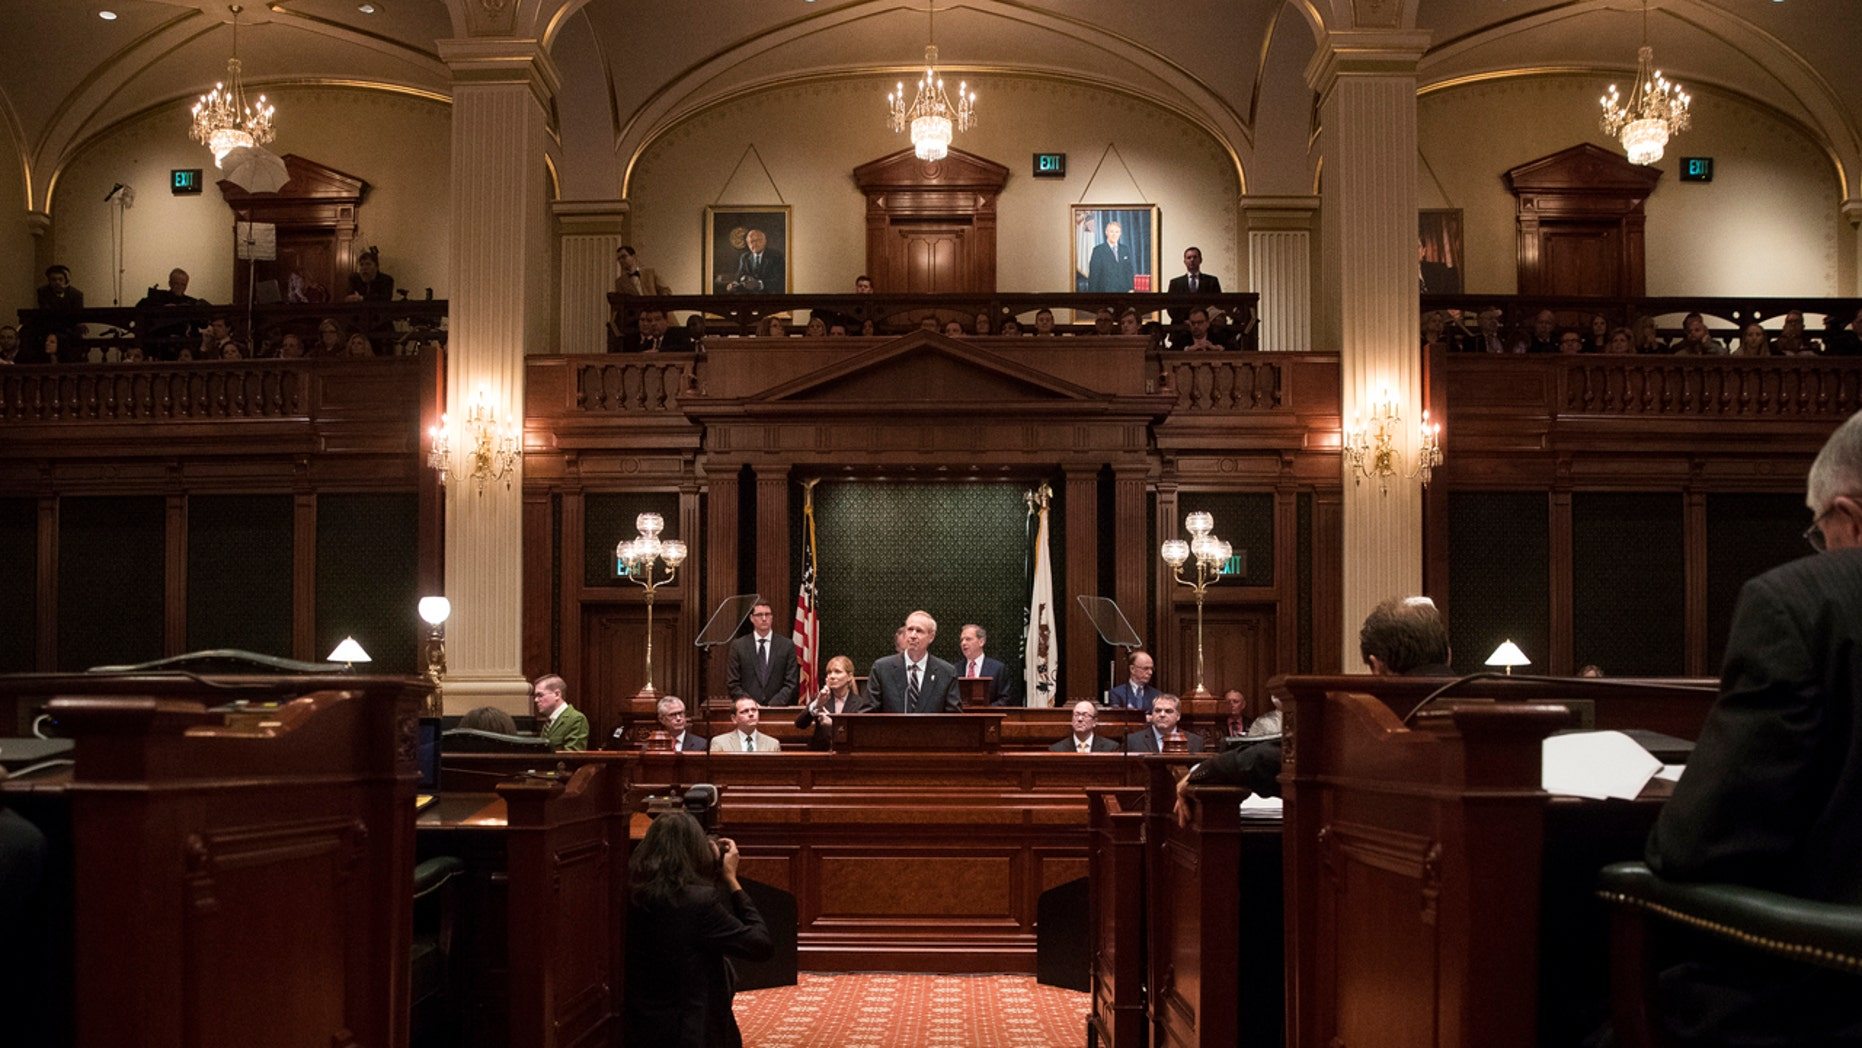 In this Jan. 25, 2017 file photo, Illinois Gov. Bruce Rauner delivers speaks in the Illinois House chamber in Springfield, Ill.